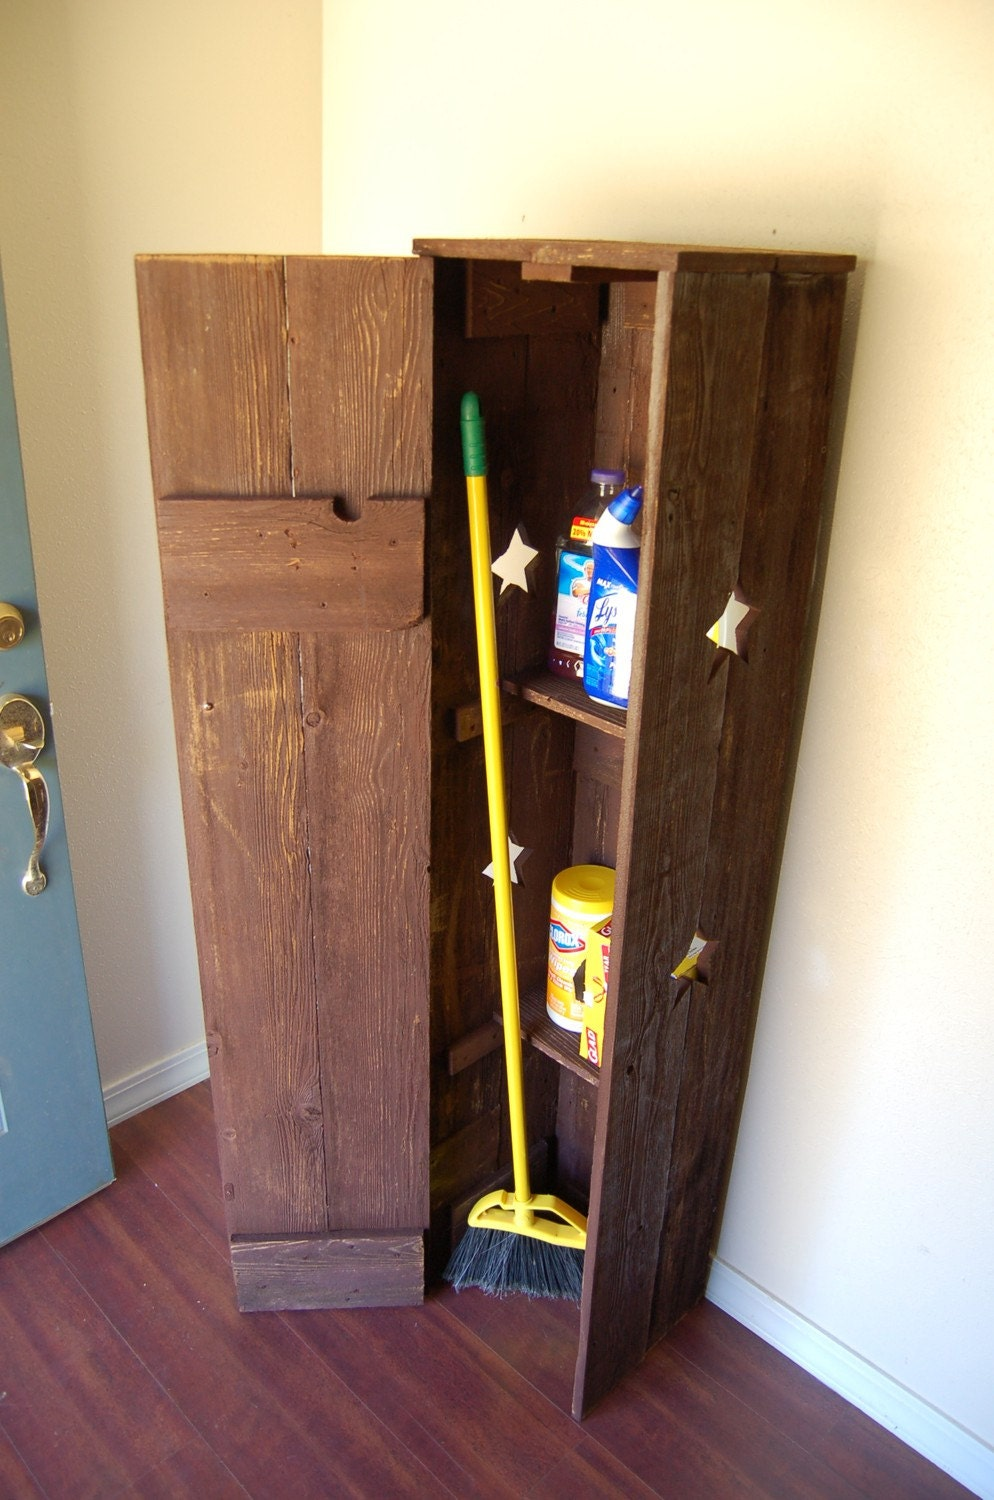 Cabinet Broom Closet Pantry Laundry Room Cabinet Kitchen